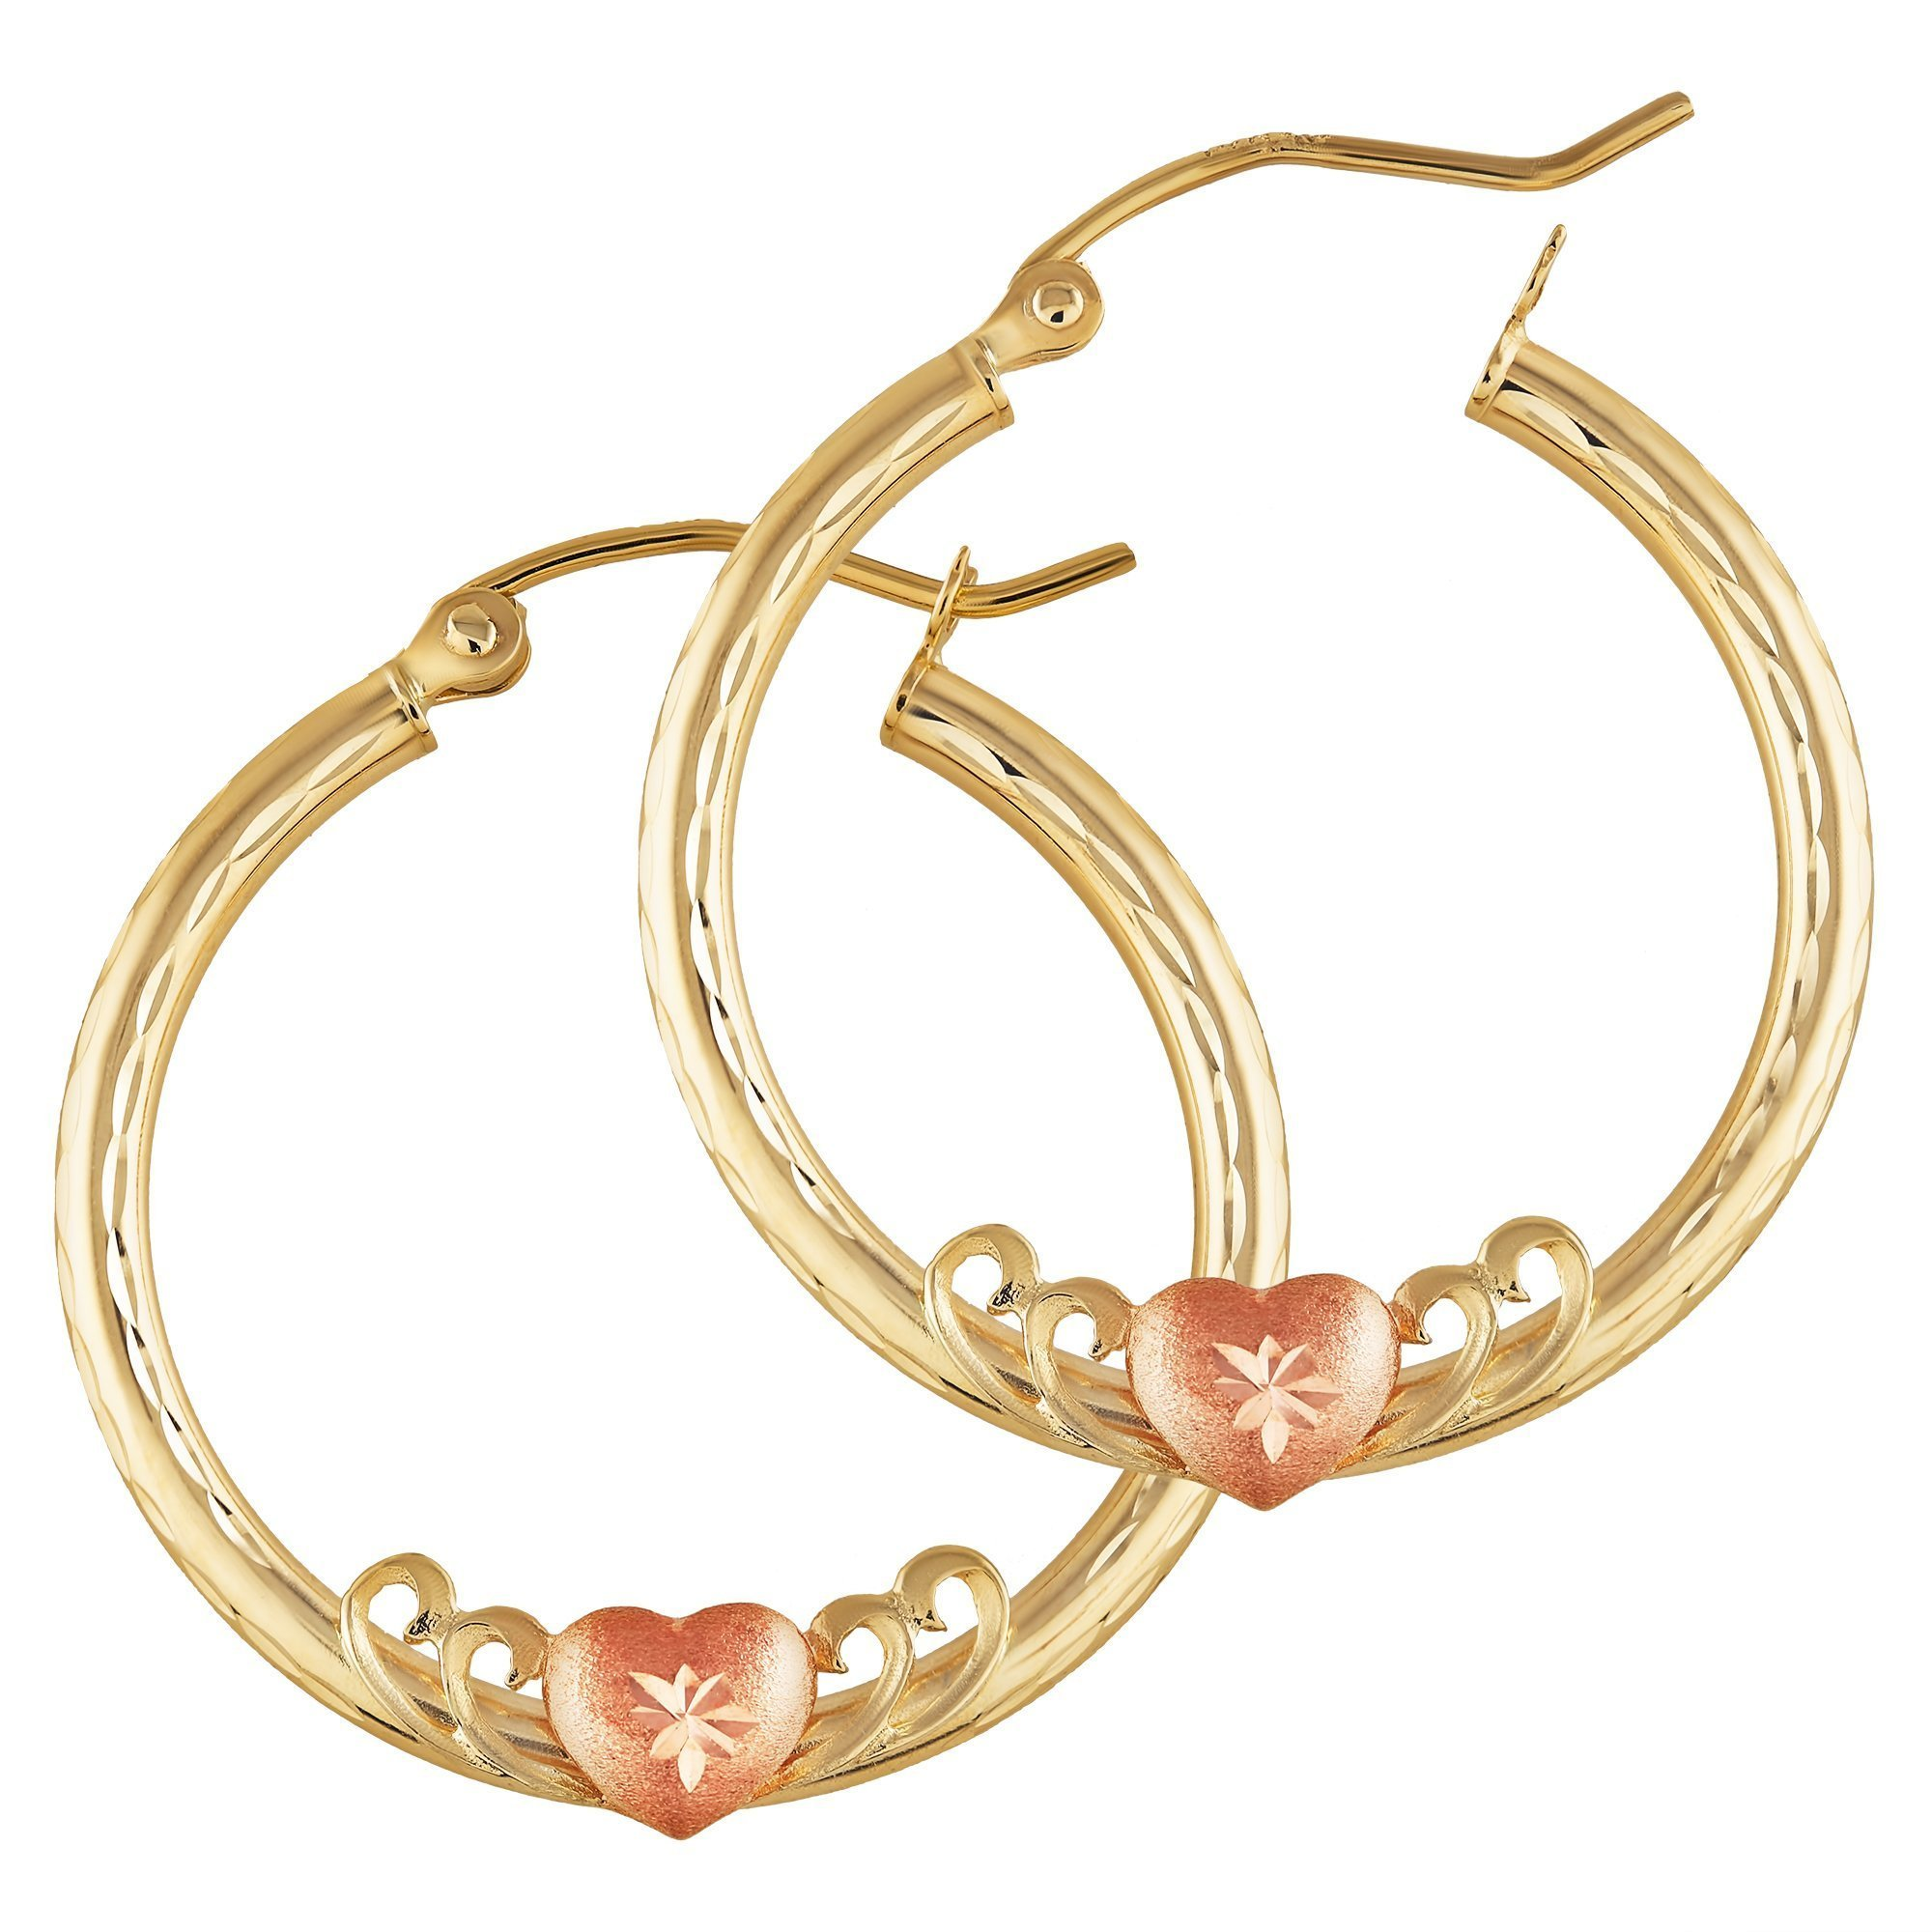 Balluccitoosi Two Tone Heart Earrings - 14k Gold Hoop Earring for Women and Girls - Unique Jewelry for Everyday